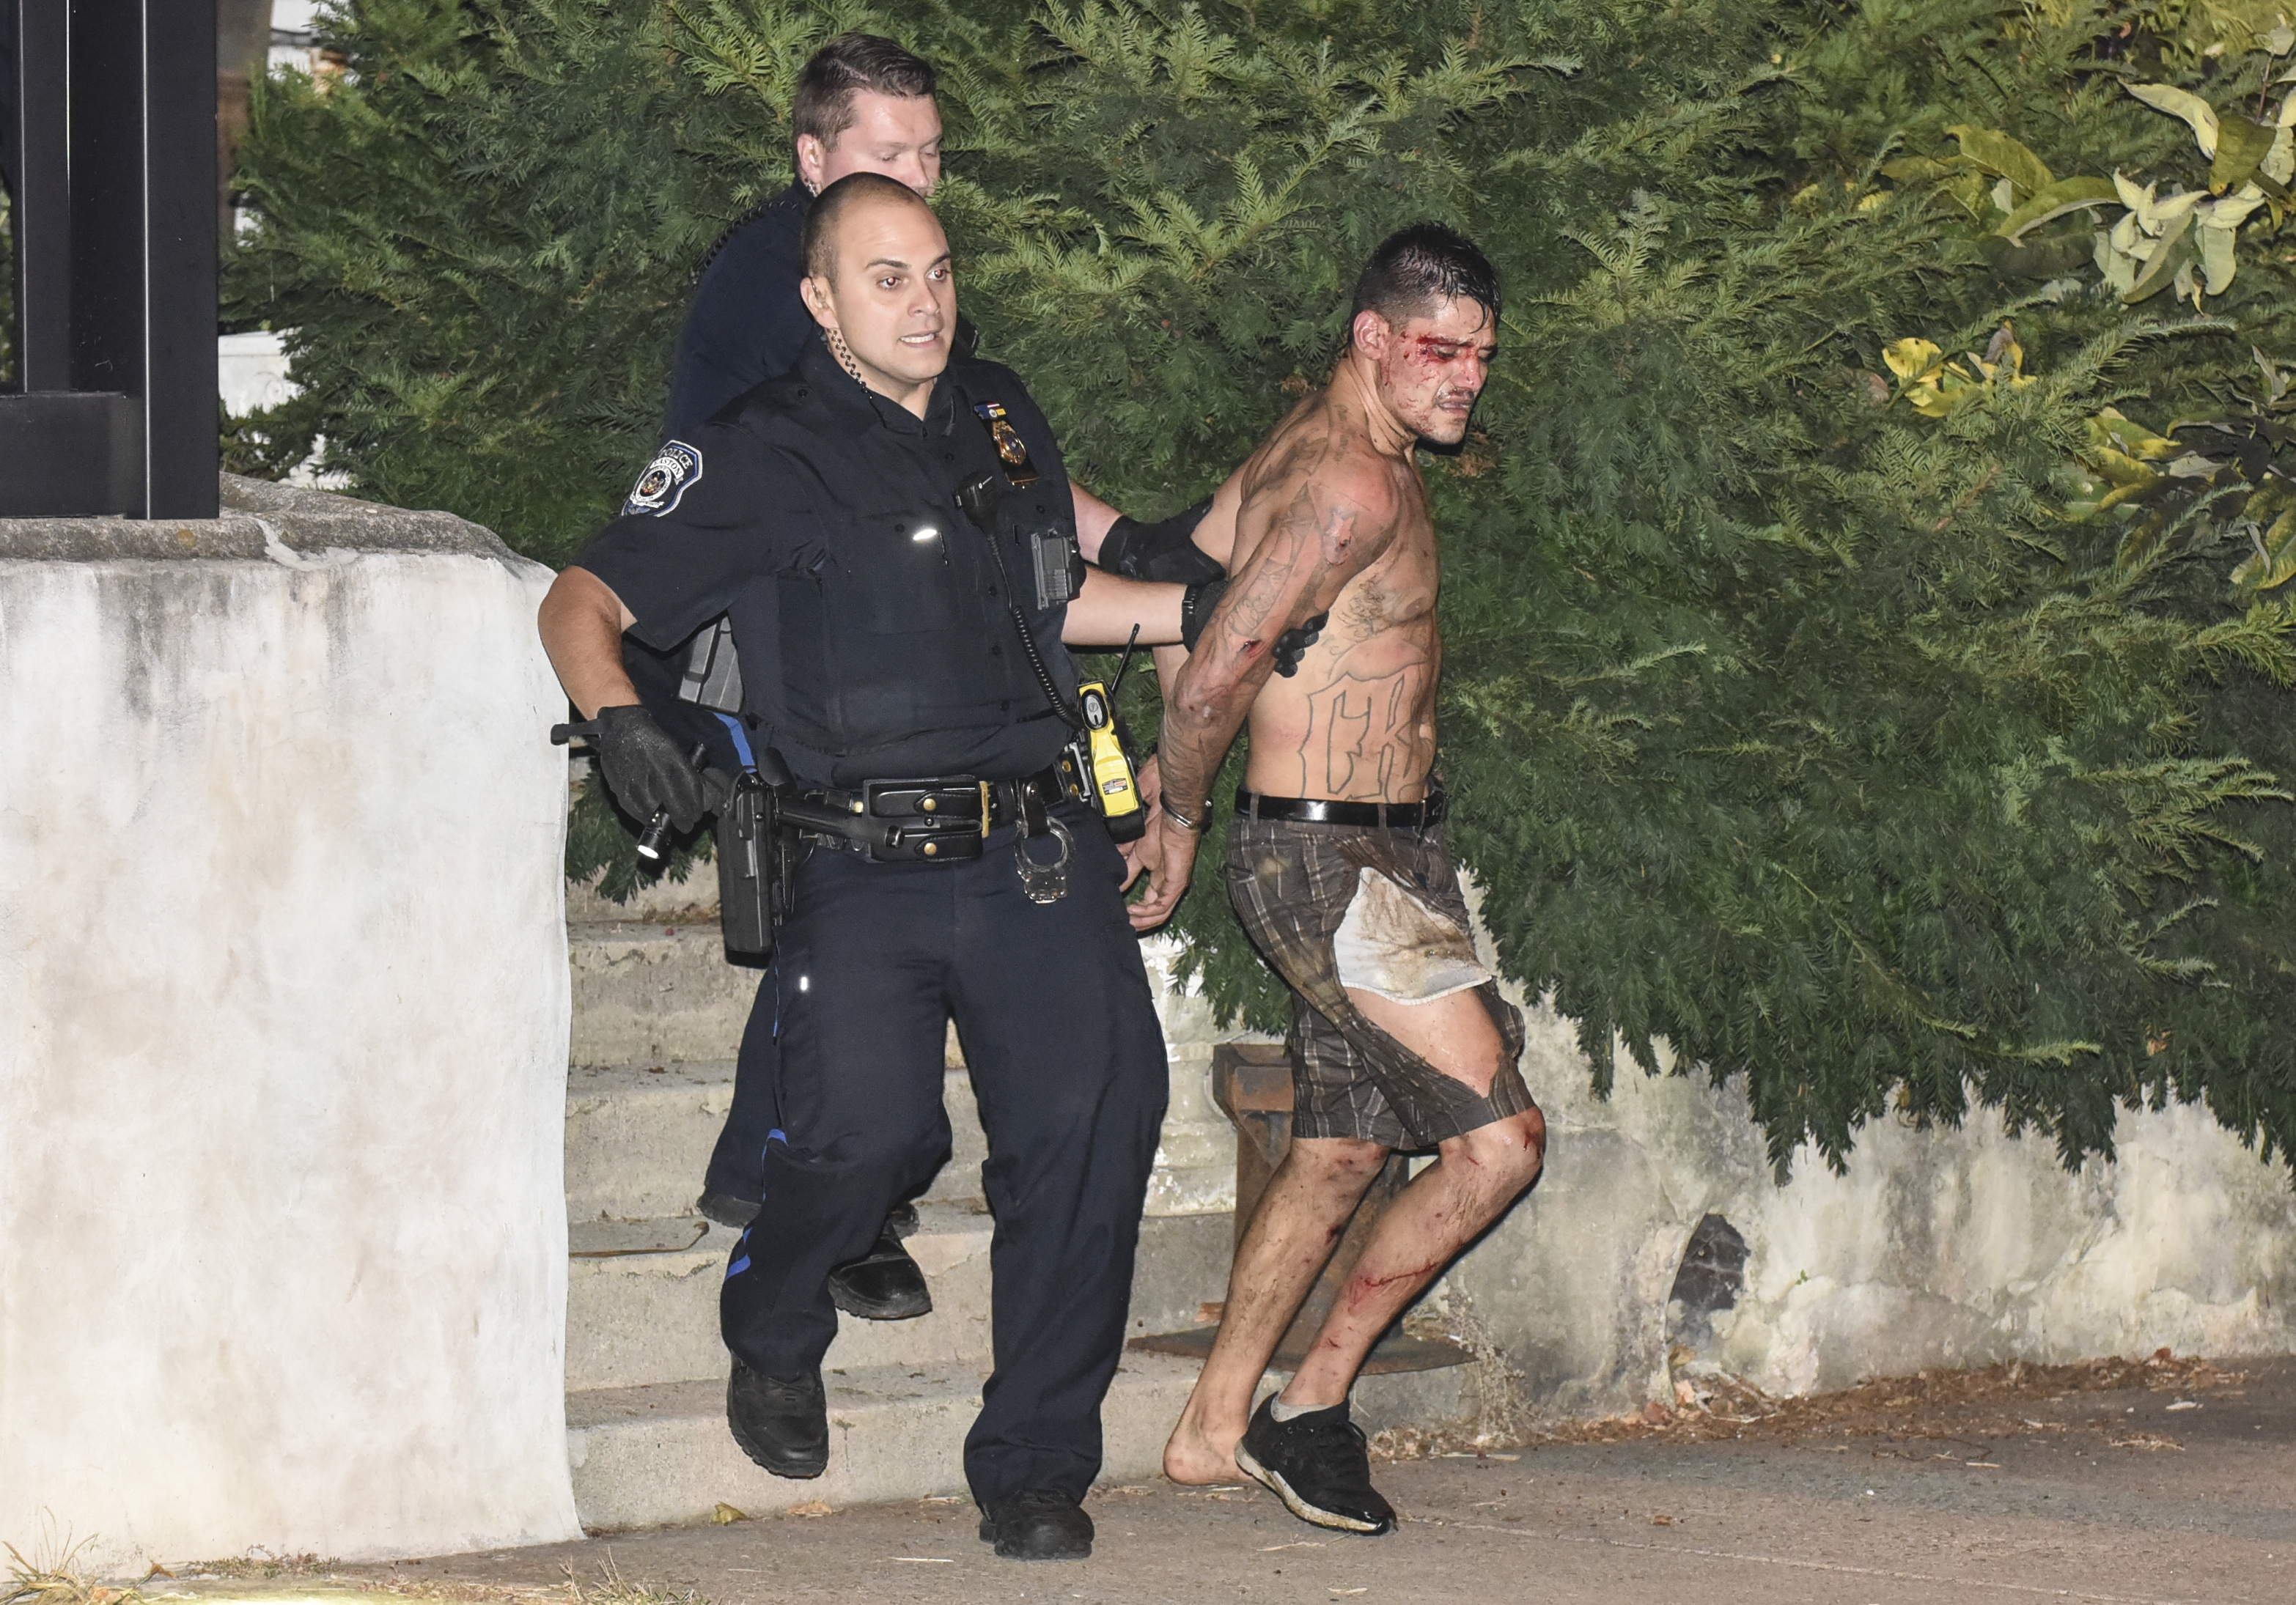 A midnight chase through backyards ends with Pa. officer hurt and suspect in custody